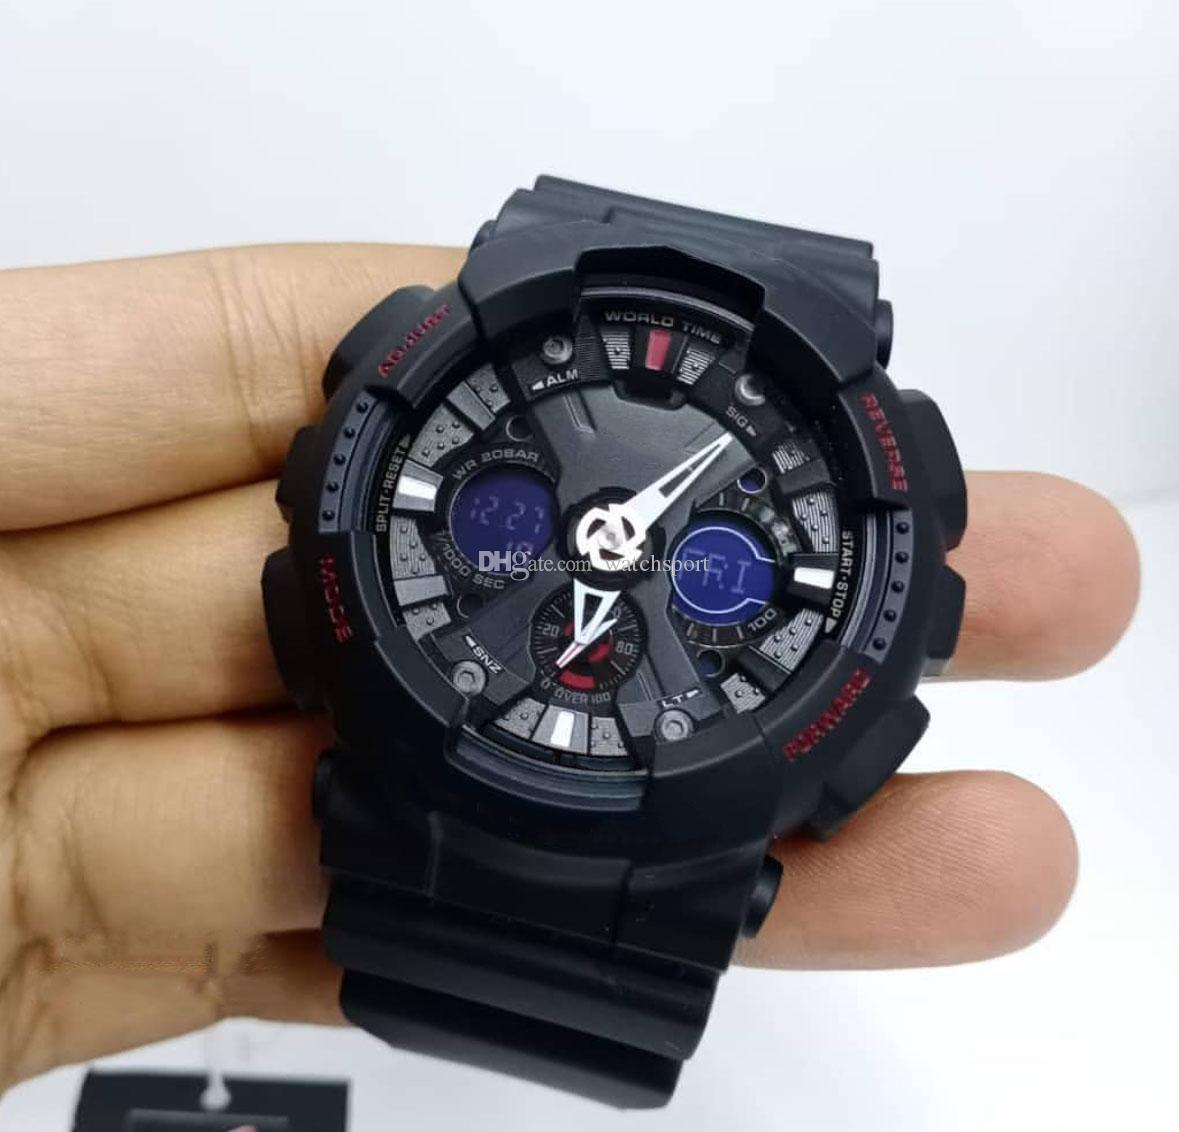 Japan Designer Mens Watches 8 Color Best Selling g120 Style Shock Clock High Quality LED Display Clock Automatic Watch Chrismas Gift For Man